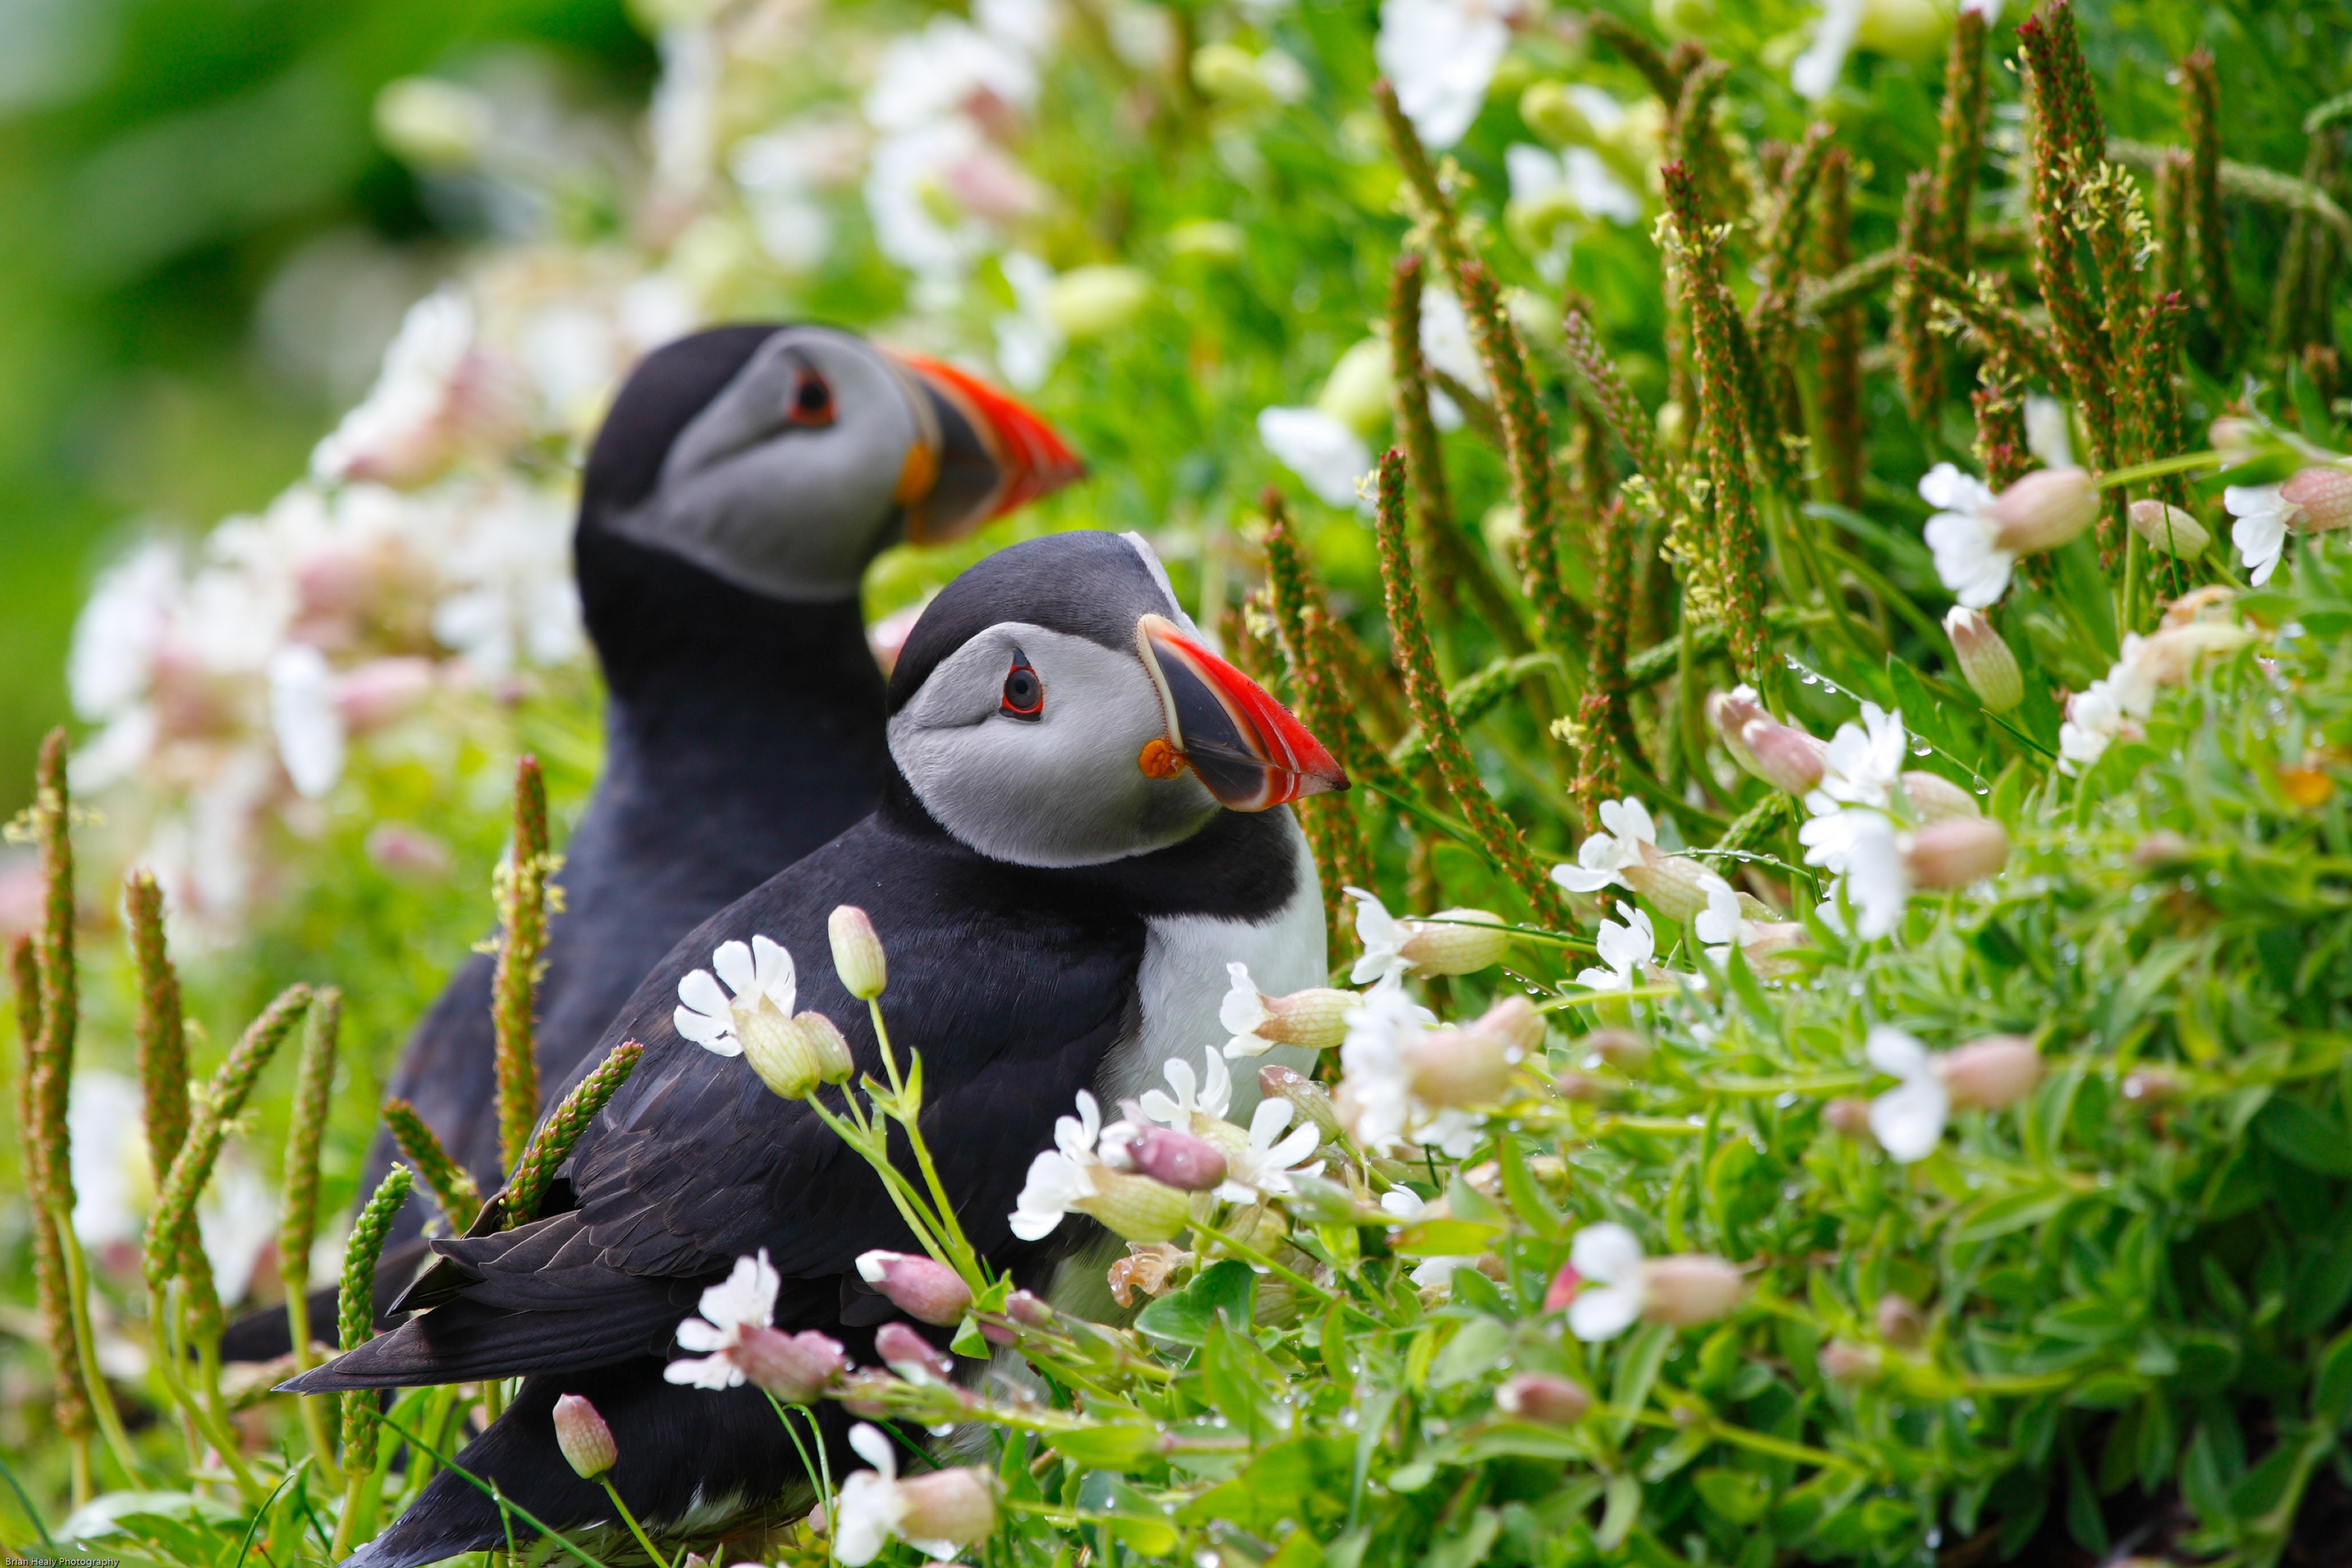 Puffin 4k Ultra HD Wallpaper Background Image